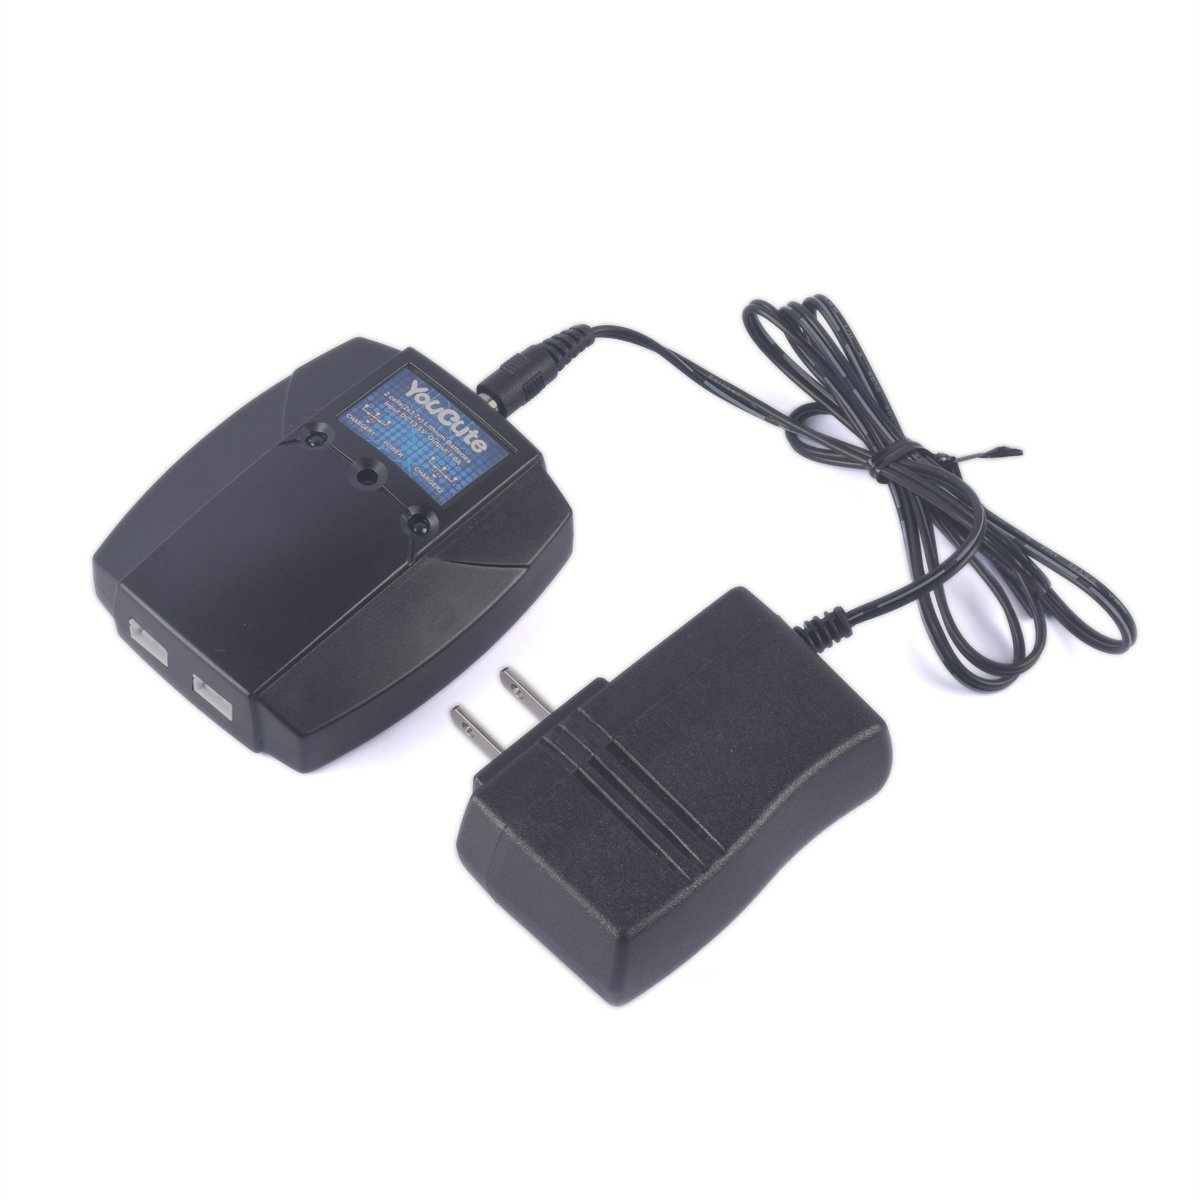 Charger YouCute charger for MJX B6 Bugs 6 B6F B6FD Rc drone spare parts